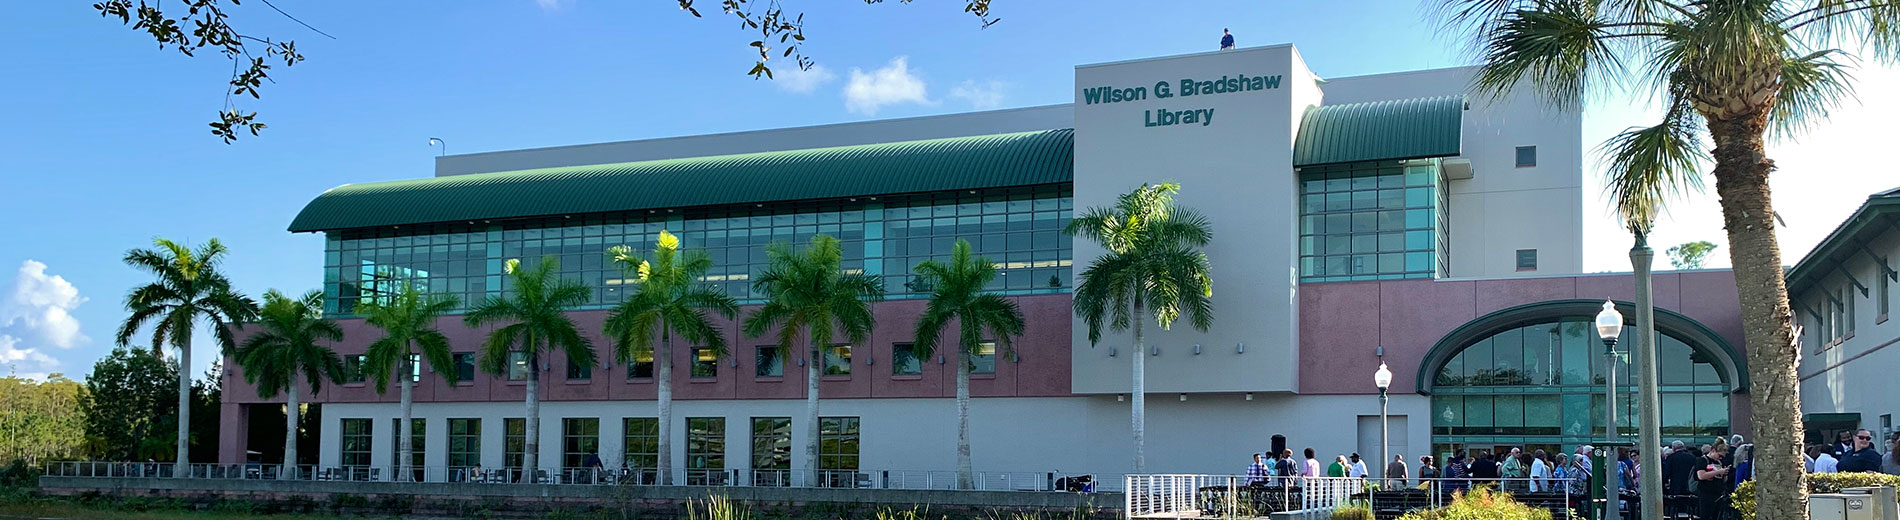 Photo shows FGCU library